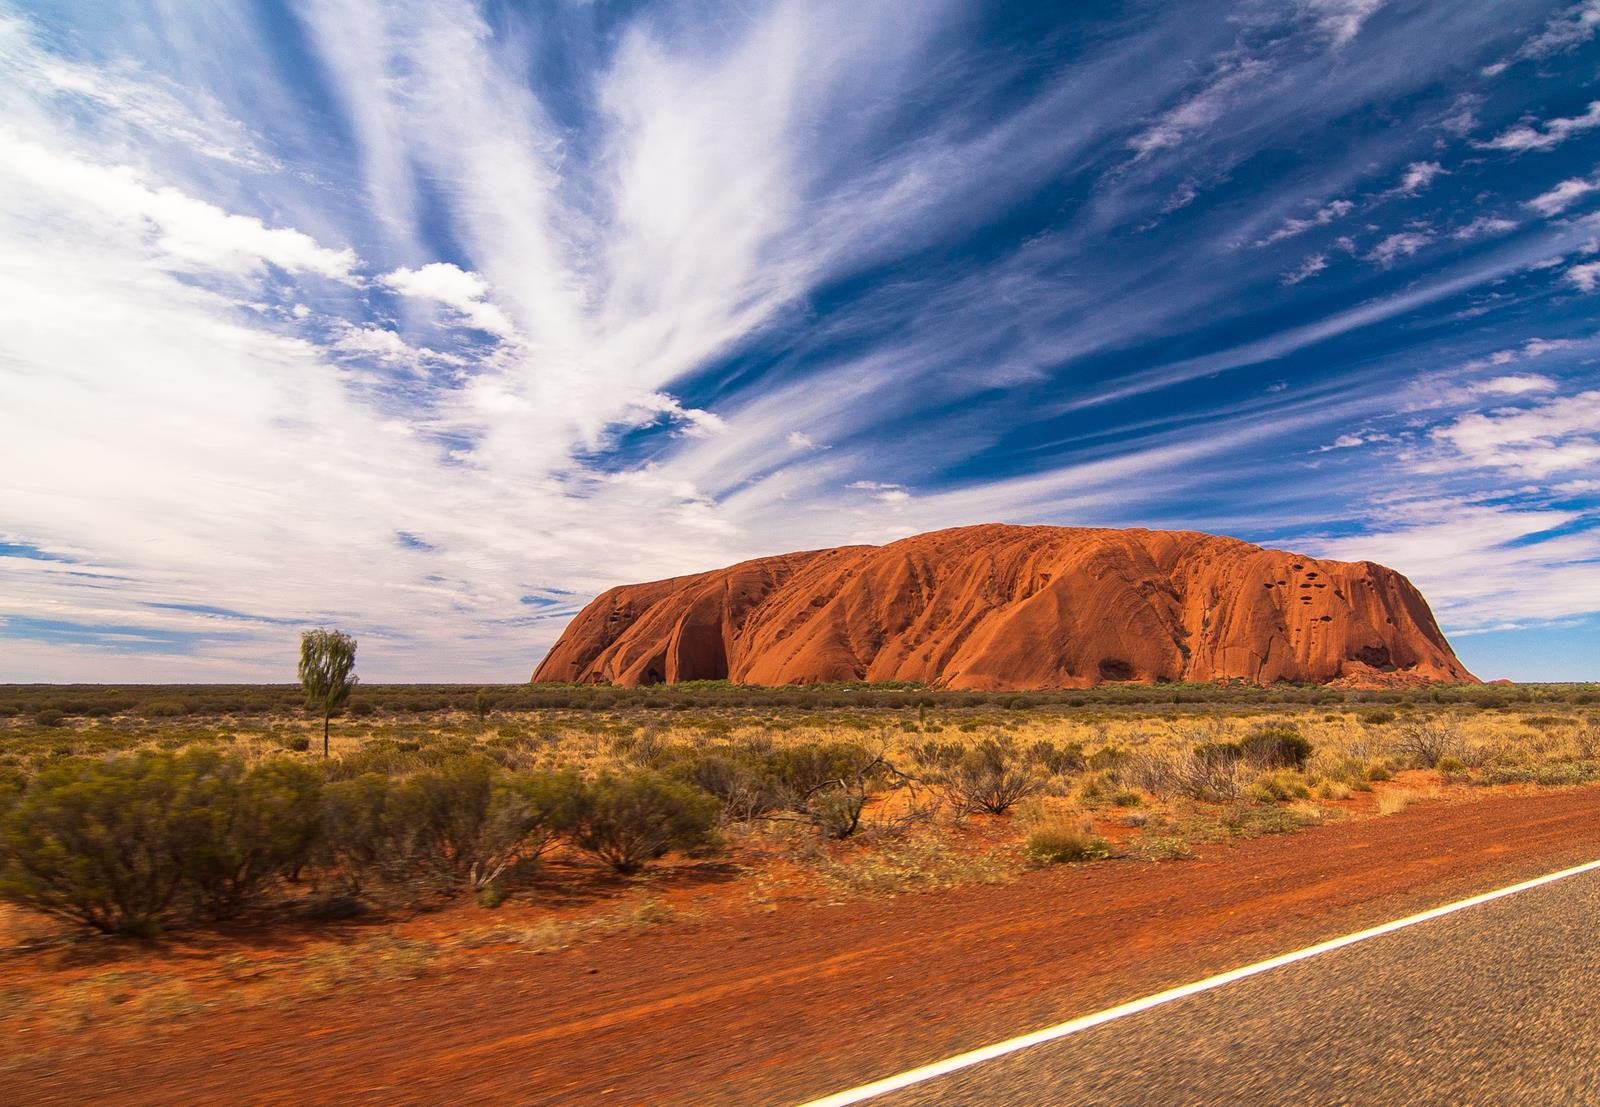 5 Amazing Natural Sights to See in Australia-Photo by holger-link-1GFUOji-yck-unsplash